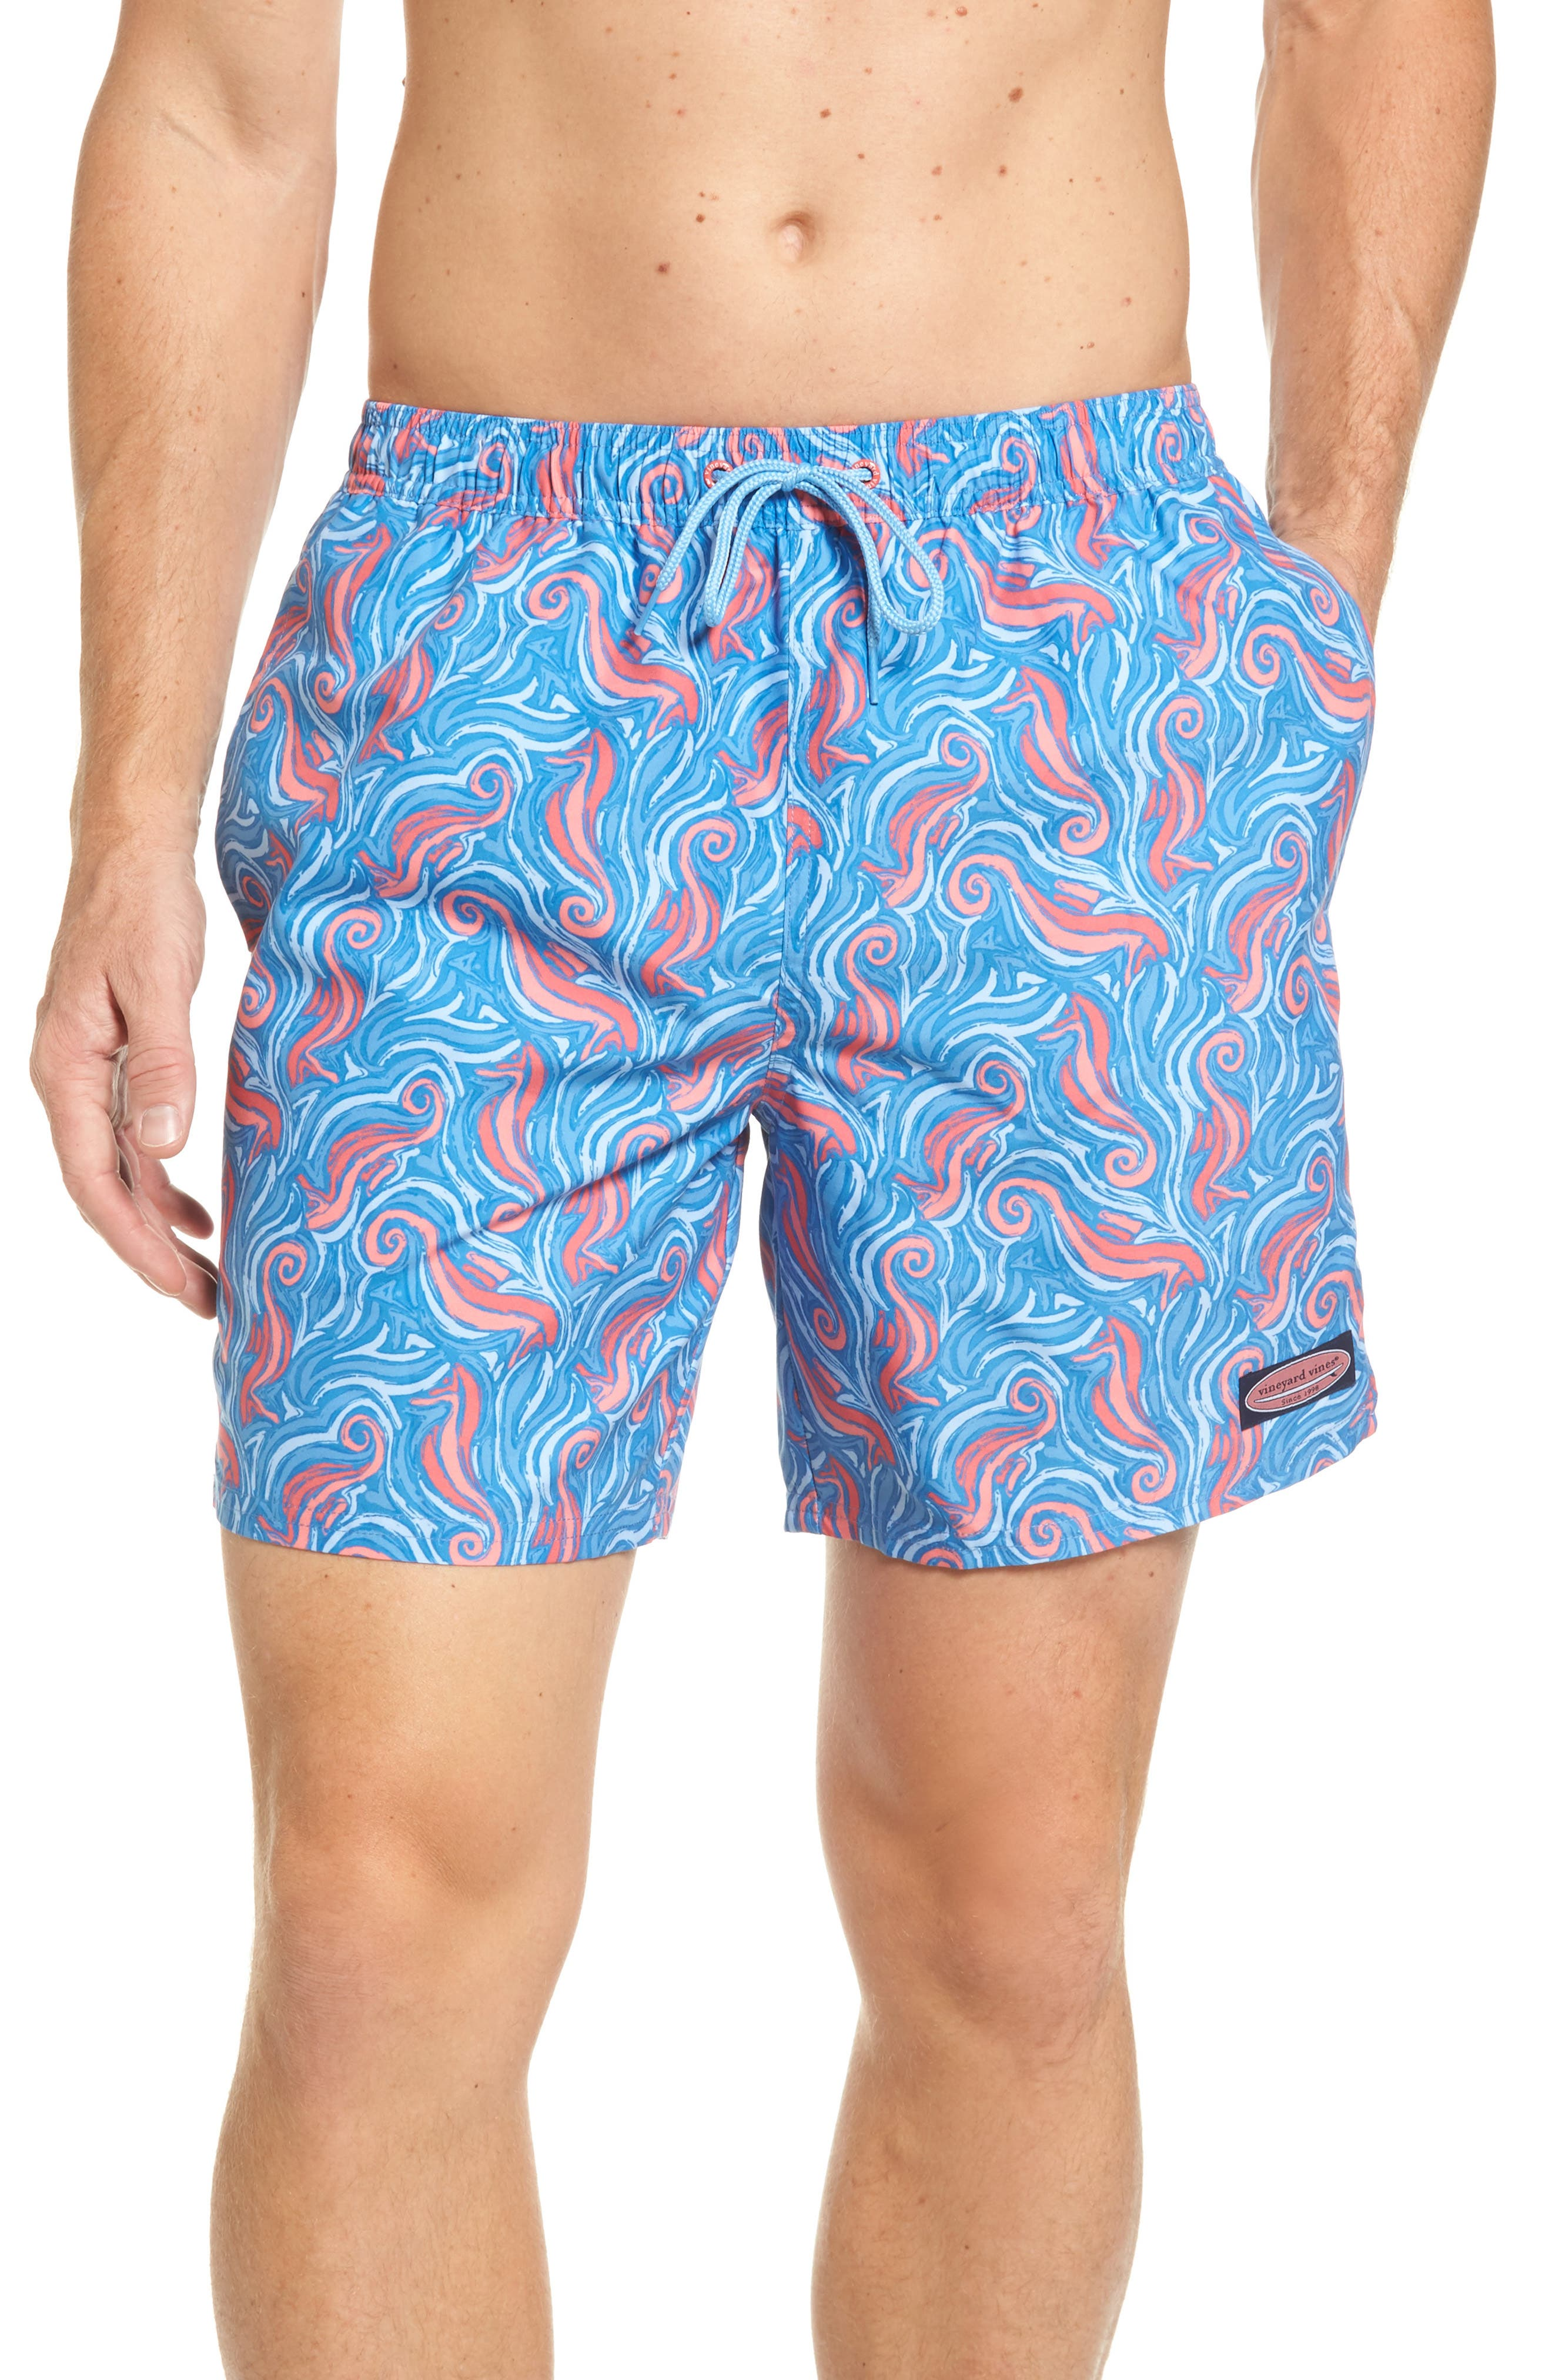 Seahorse Chappy Swim Trunks,                             Main thumbnail 1, color,                             Hull Blue